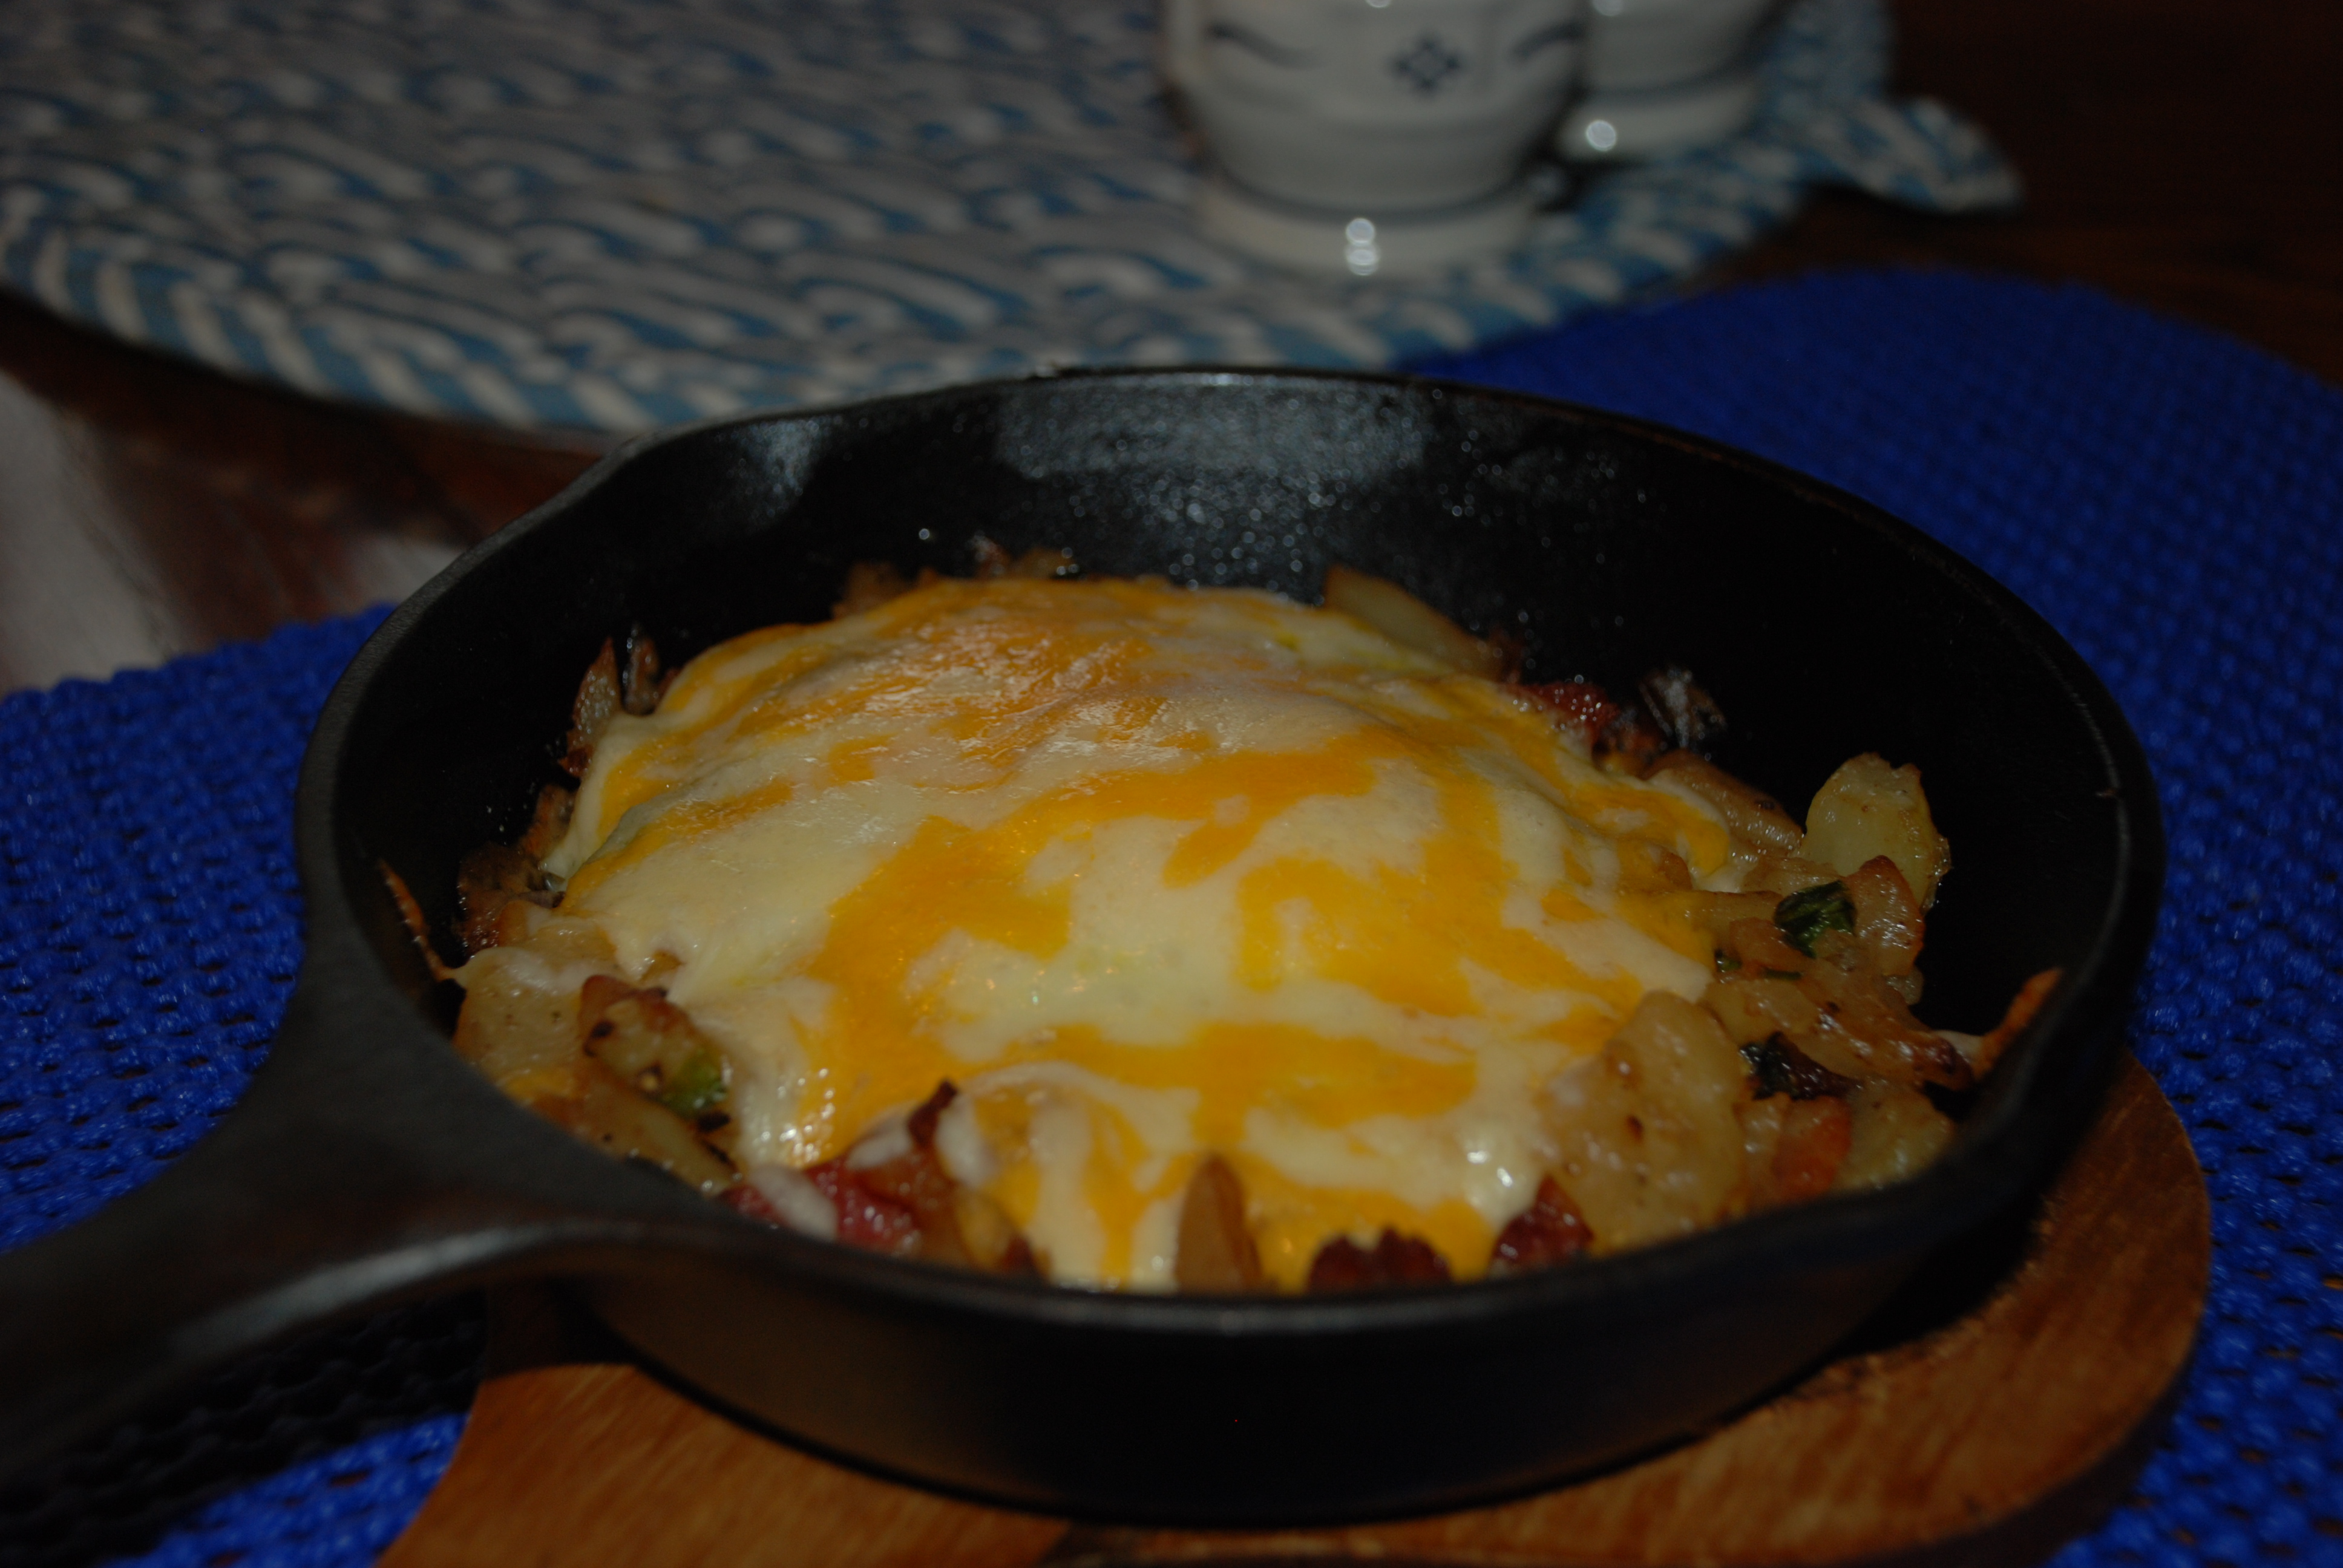 Breakfast Skillet With Green Onion Home Fries Recipe ...